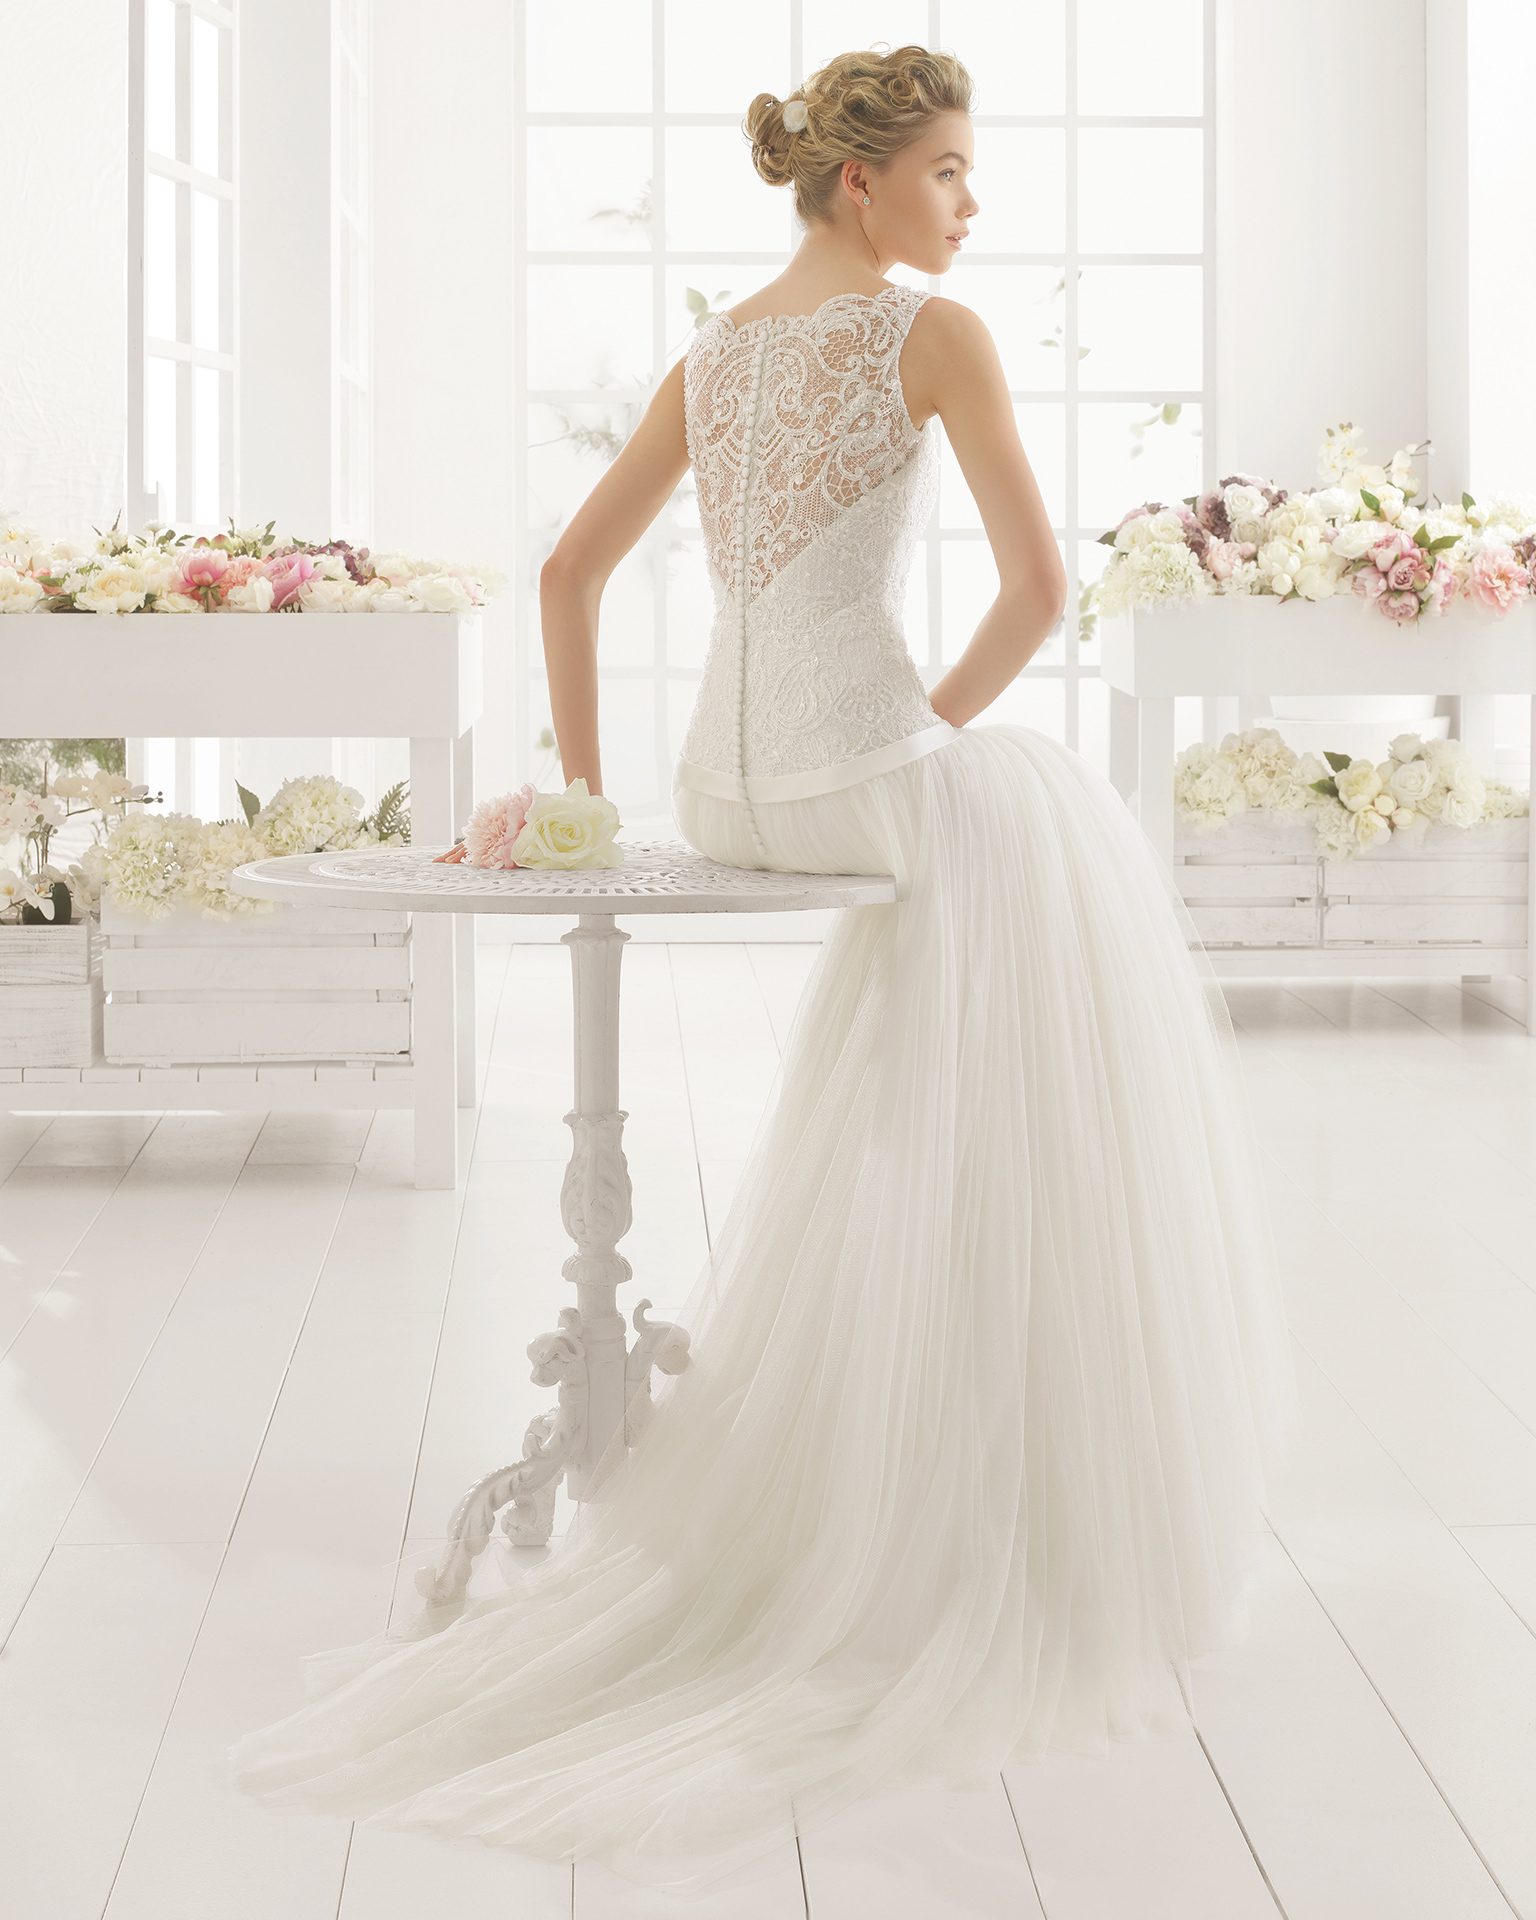 MAGNOLIA beaded guipure and tulle wedding dress.